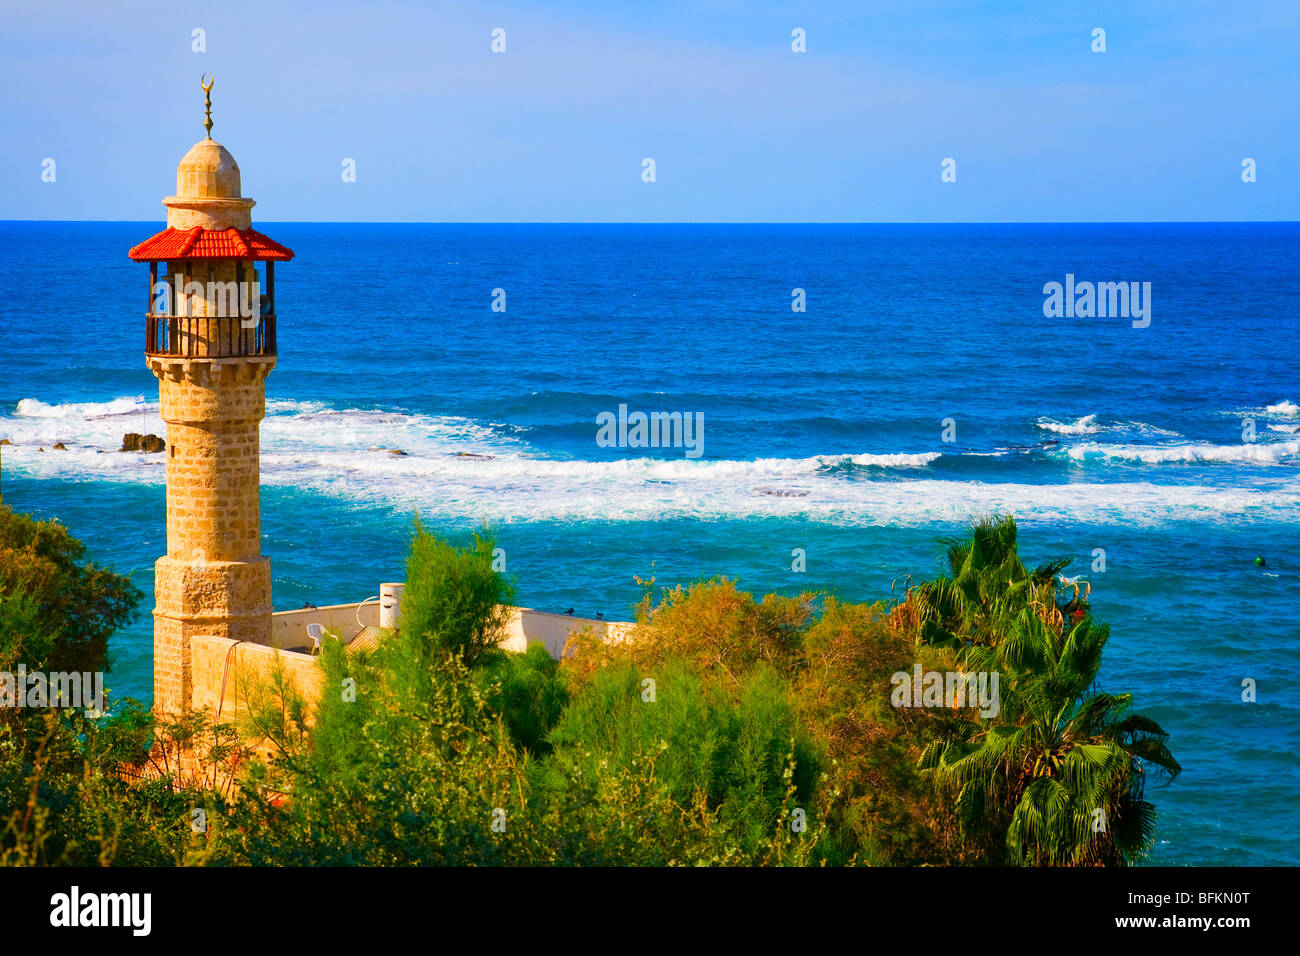 Landscape colorful view from Tel Aviv coastline, Israel - Stock Image